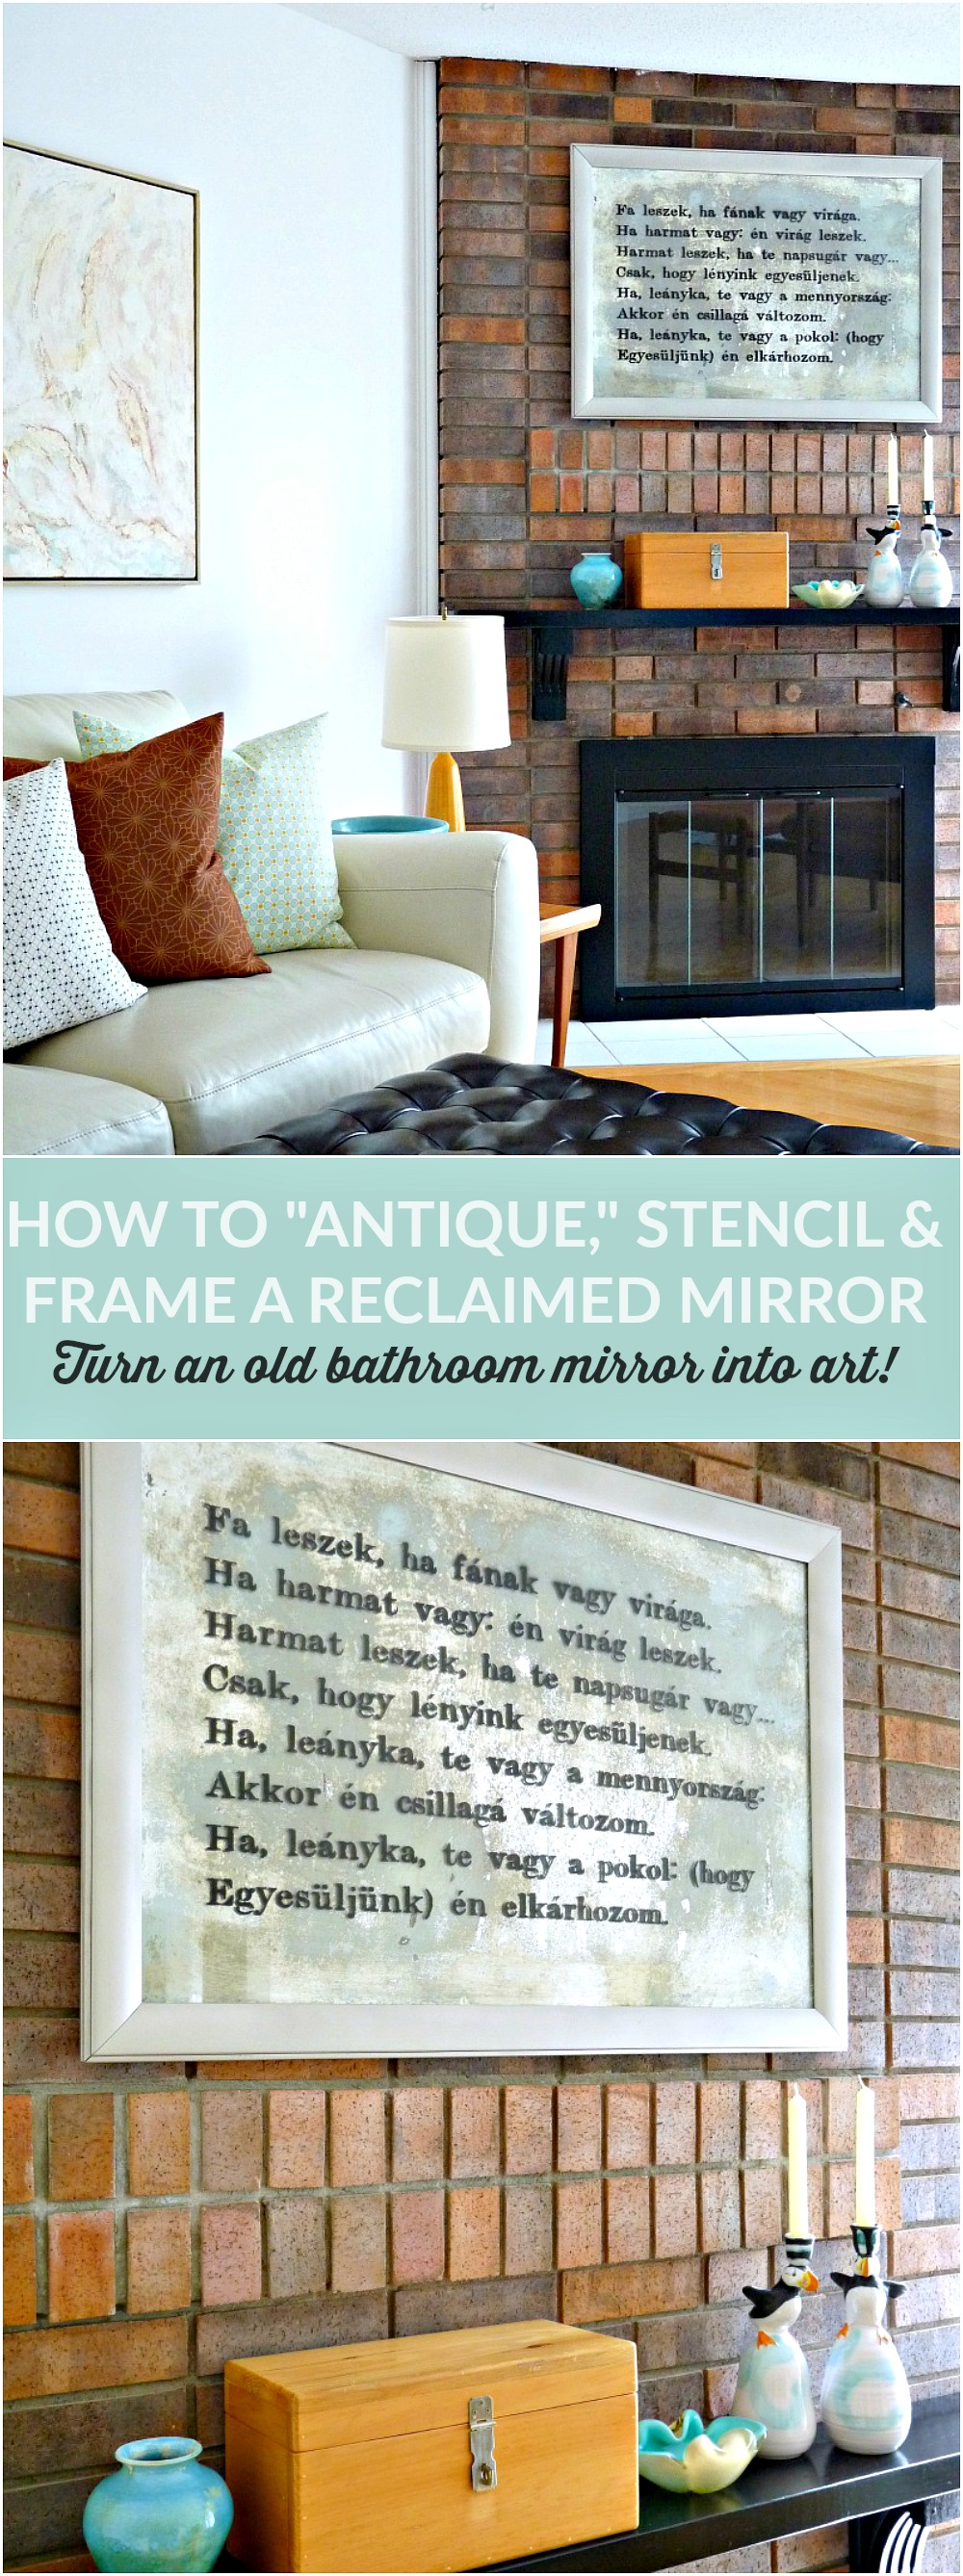 How to Antique, Stencil and Frame an Old Bathroom Mirror to Turn it into Art